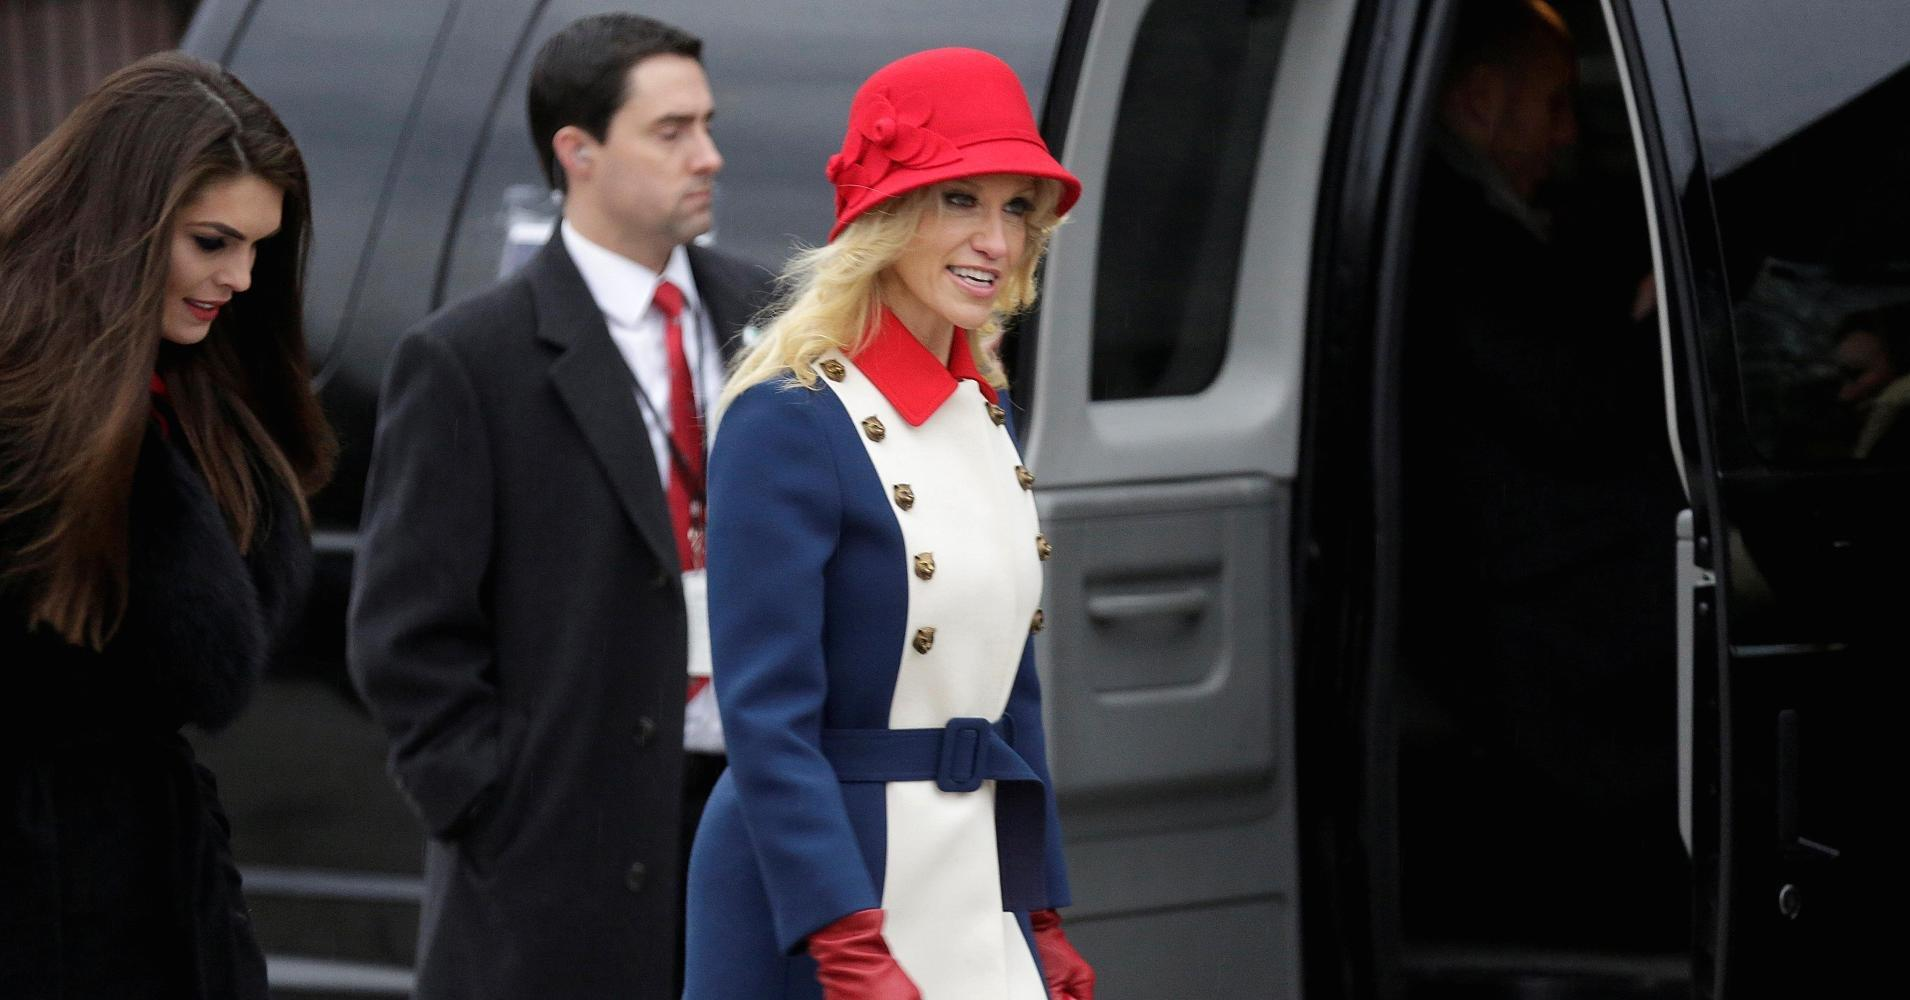 Conway decked out in patriotic dress for inauguration